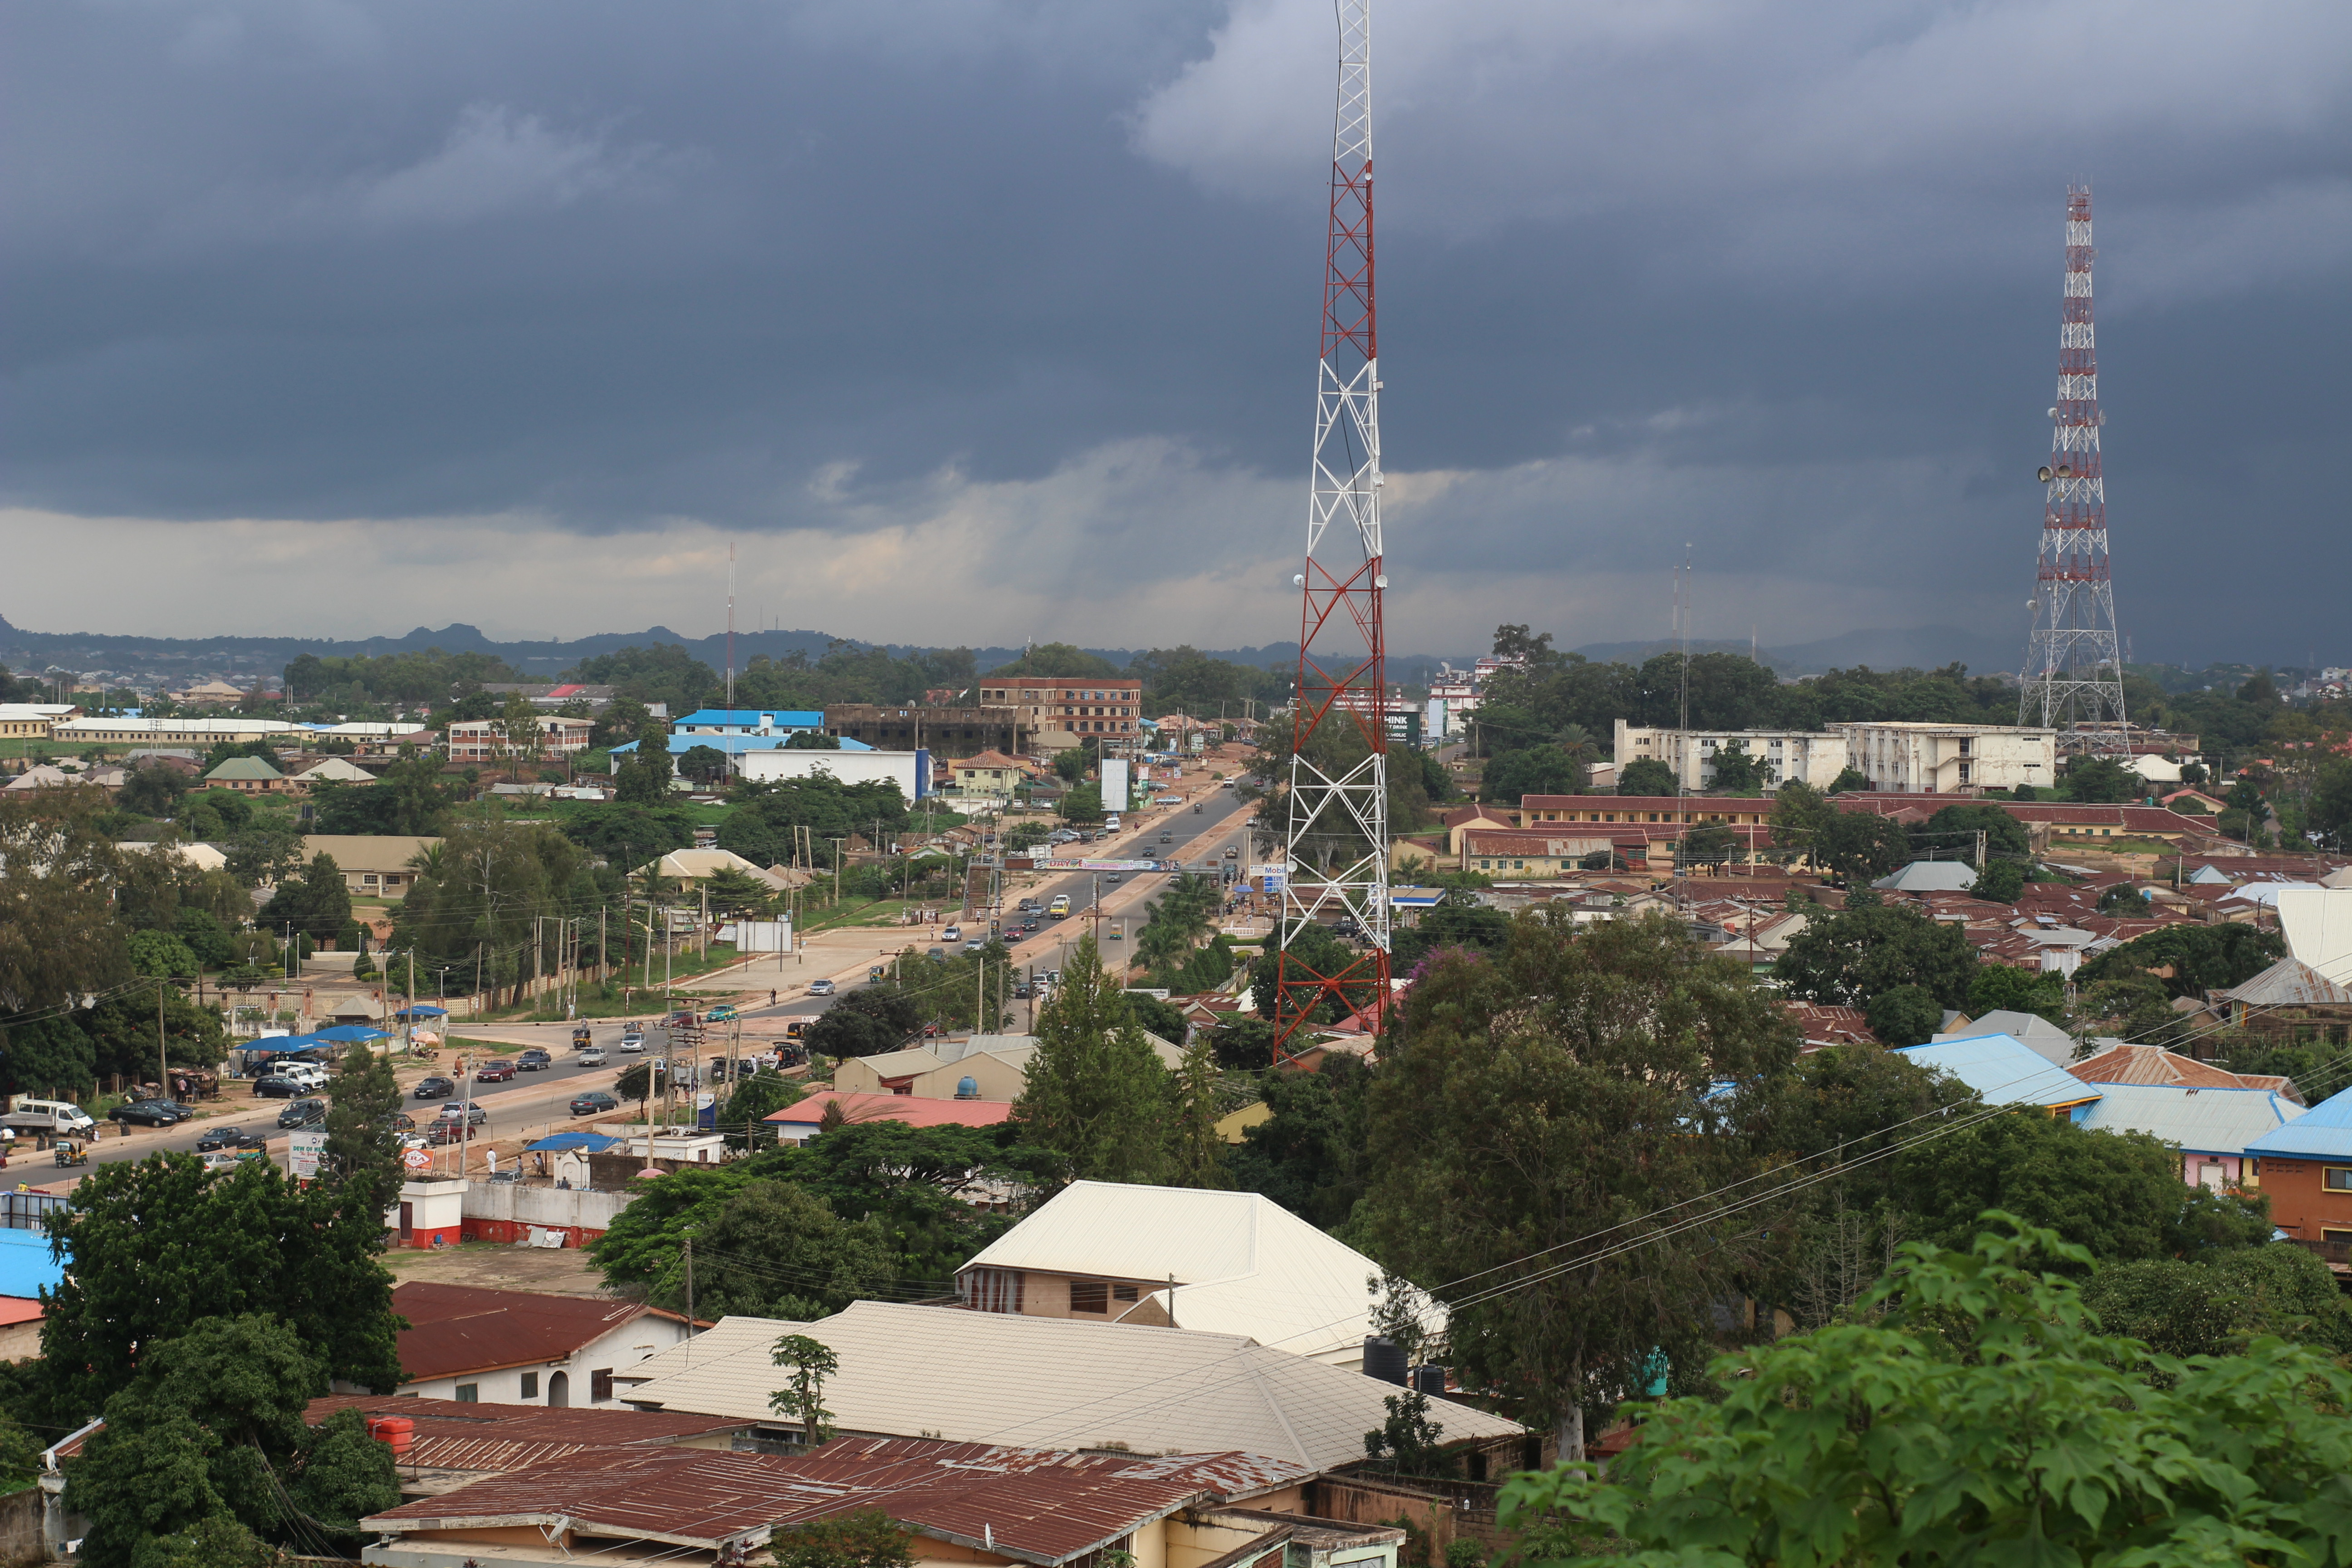 Jos Residents Lament Biting Cold, Spend More Hours Indoors